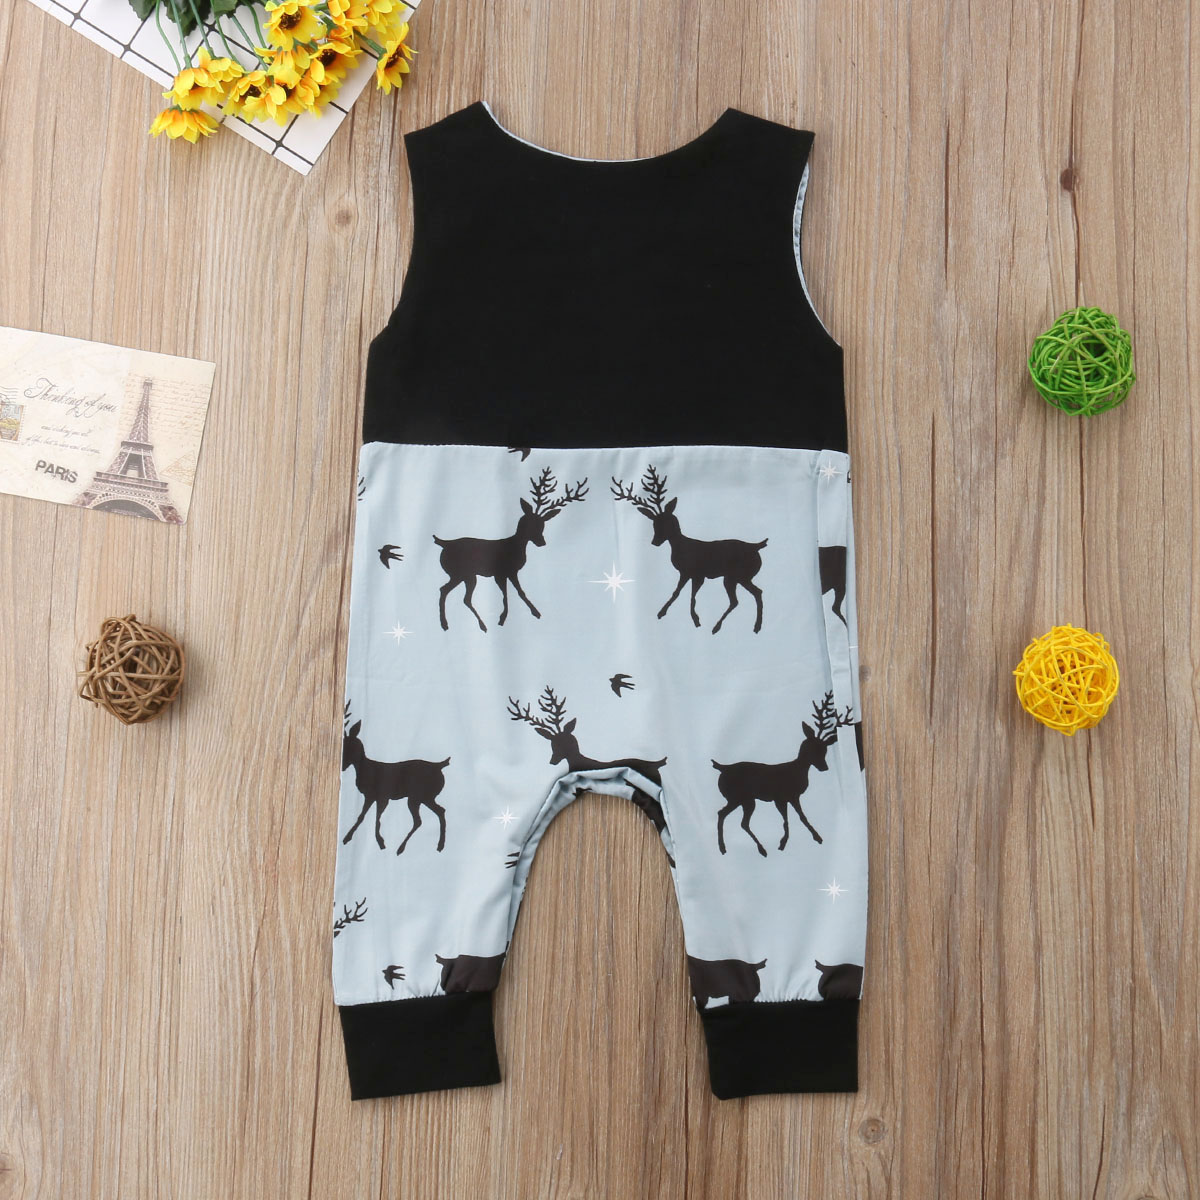 795b303b5e4 2018 Newborn Infant Baby Boy Girl Sleeveless Romper Deer Jumpsuit Clothes  Summer Christmas Outfits 0 24M-in Rompers from Mother   Kids on  Aliexpress.com ...